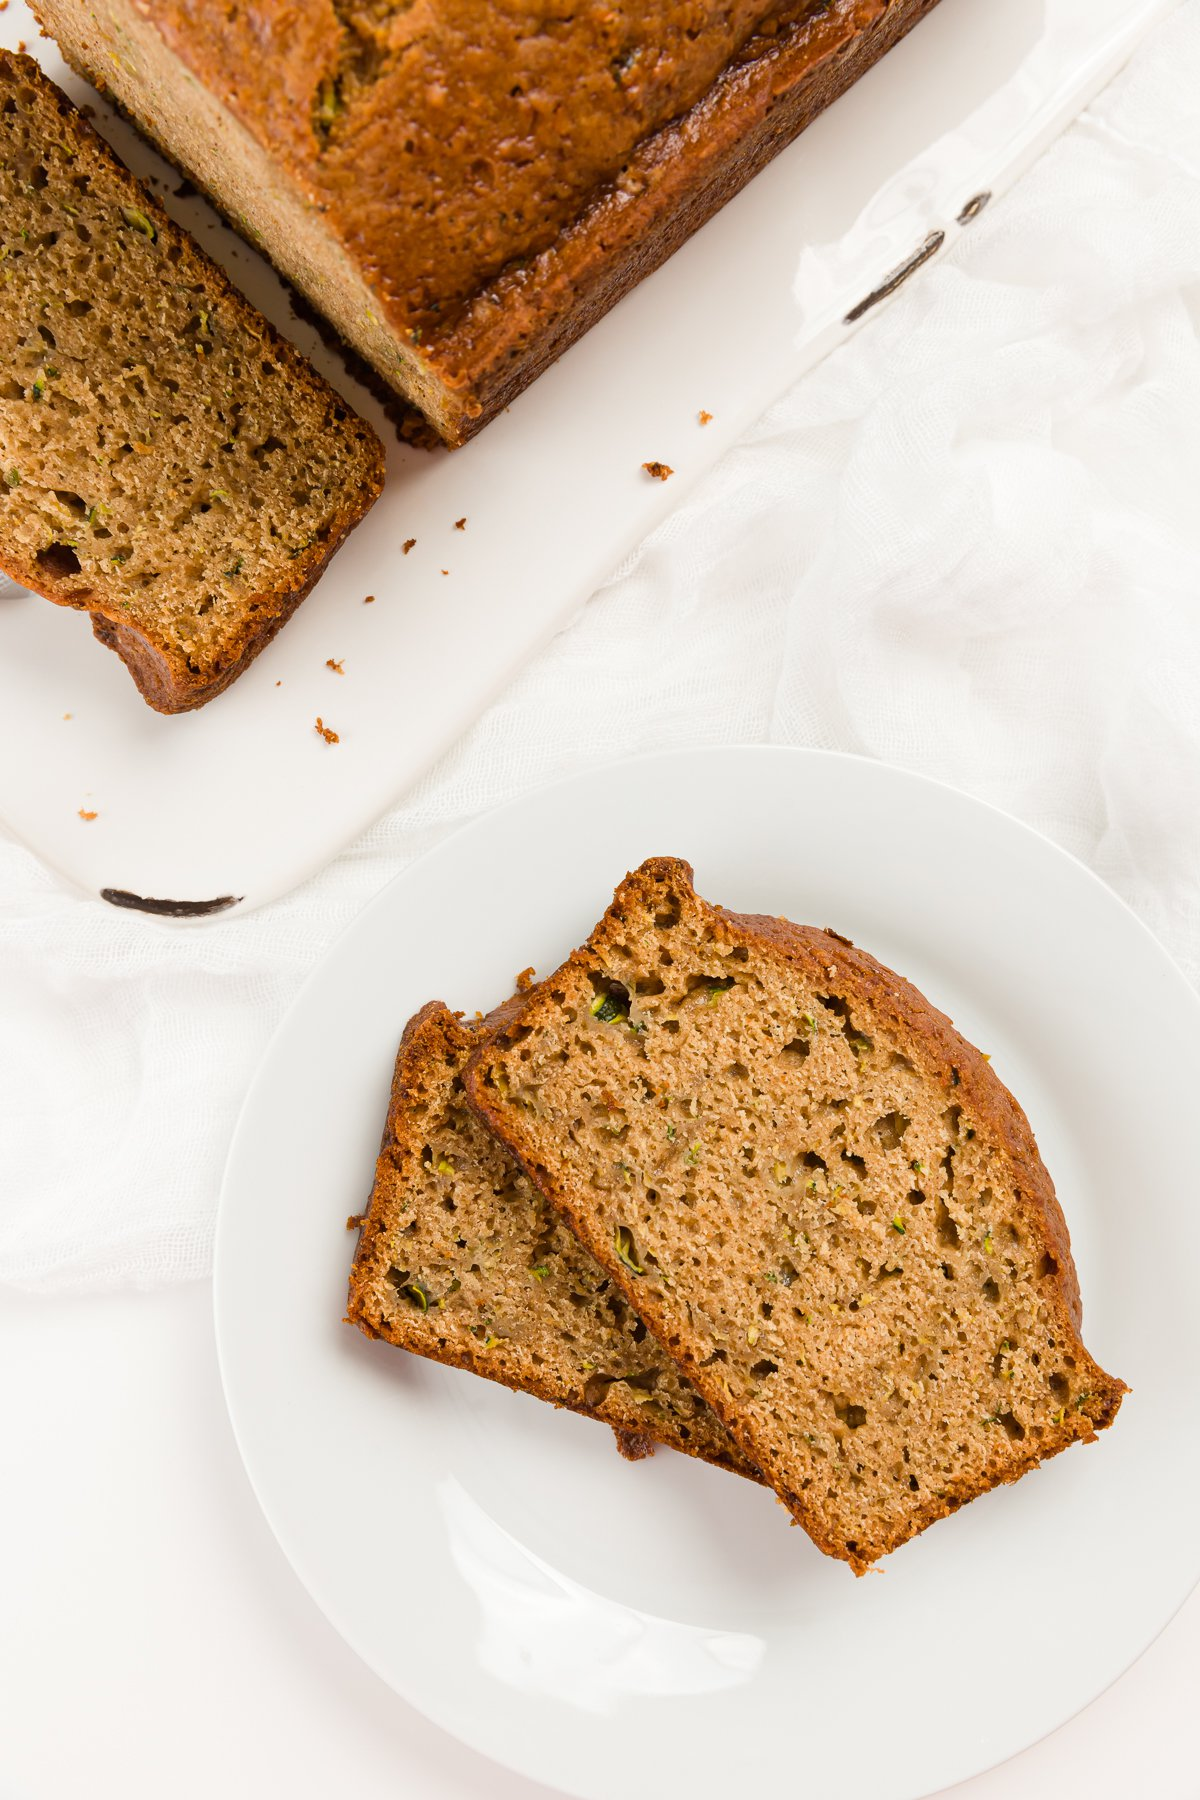 two slices of zucchini bread on a while plate with the loaf in the background